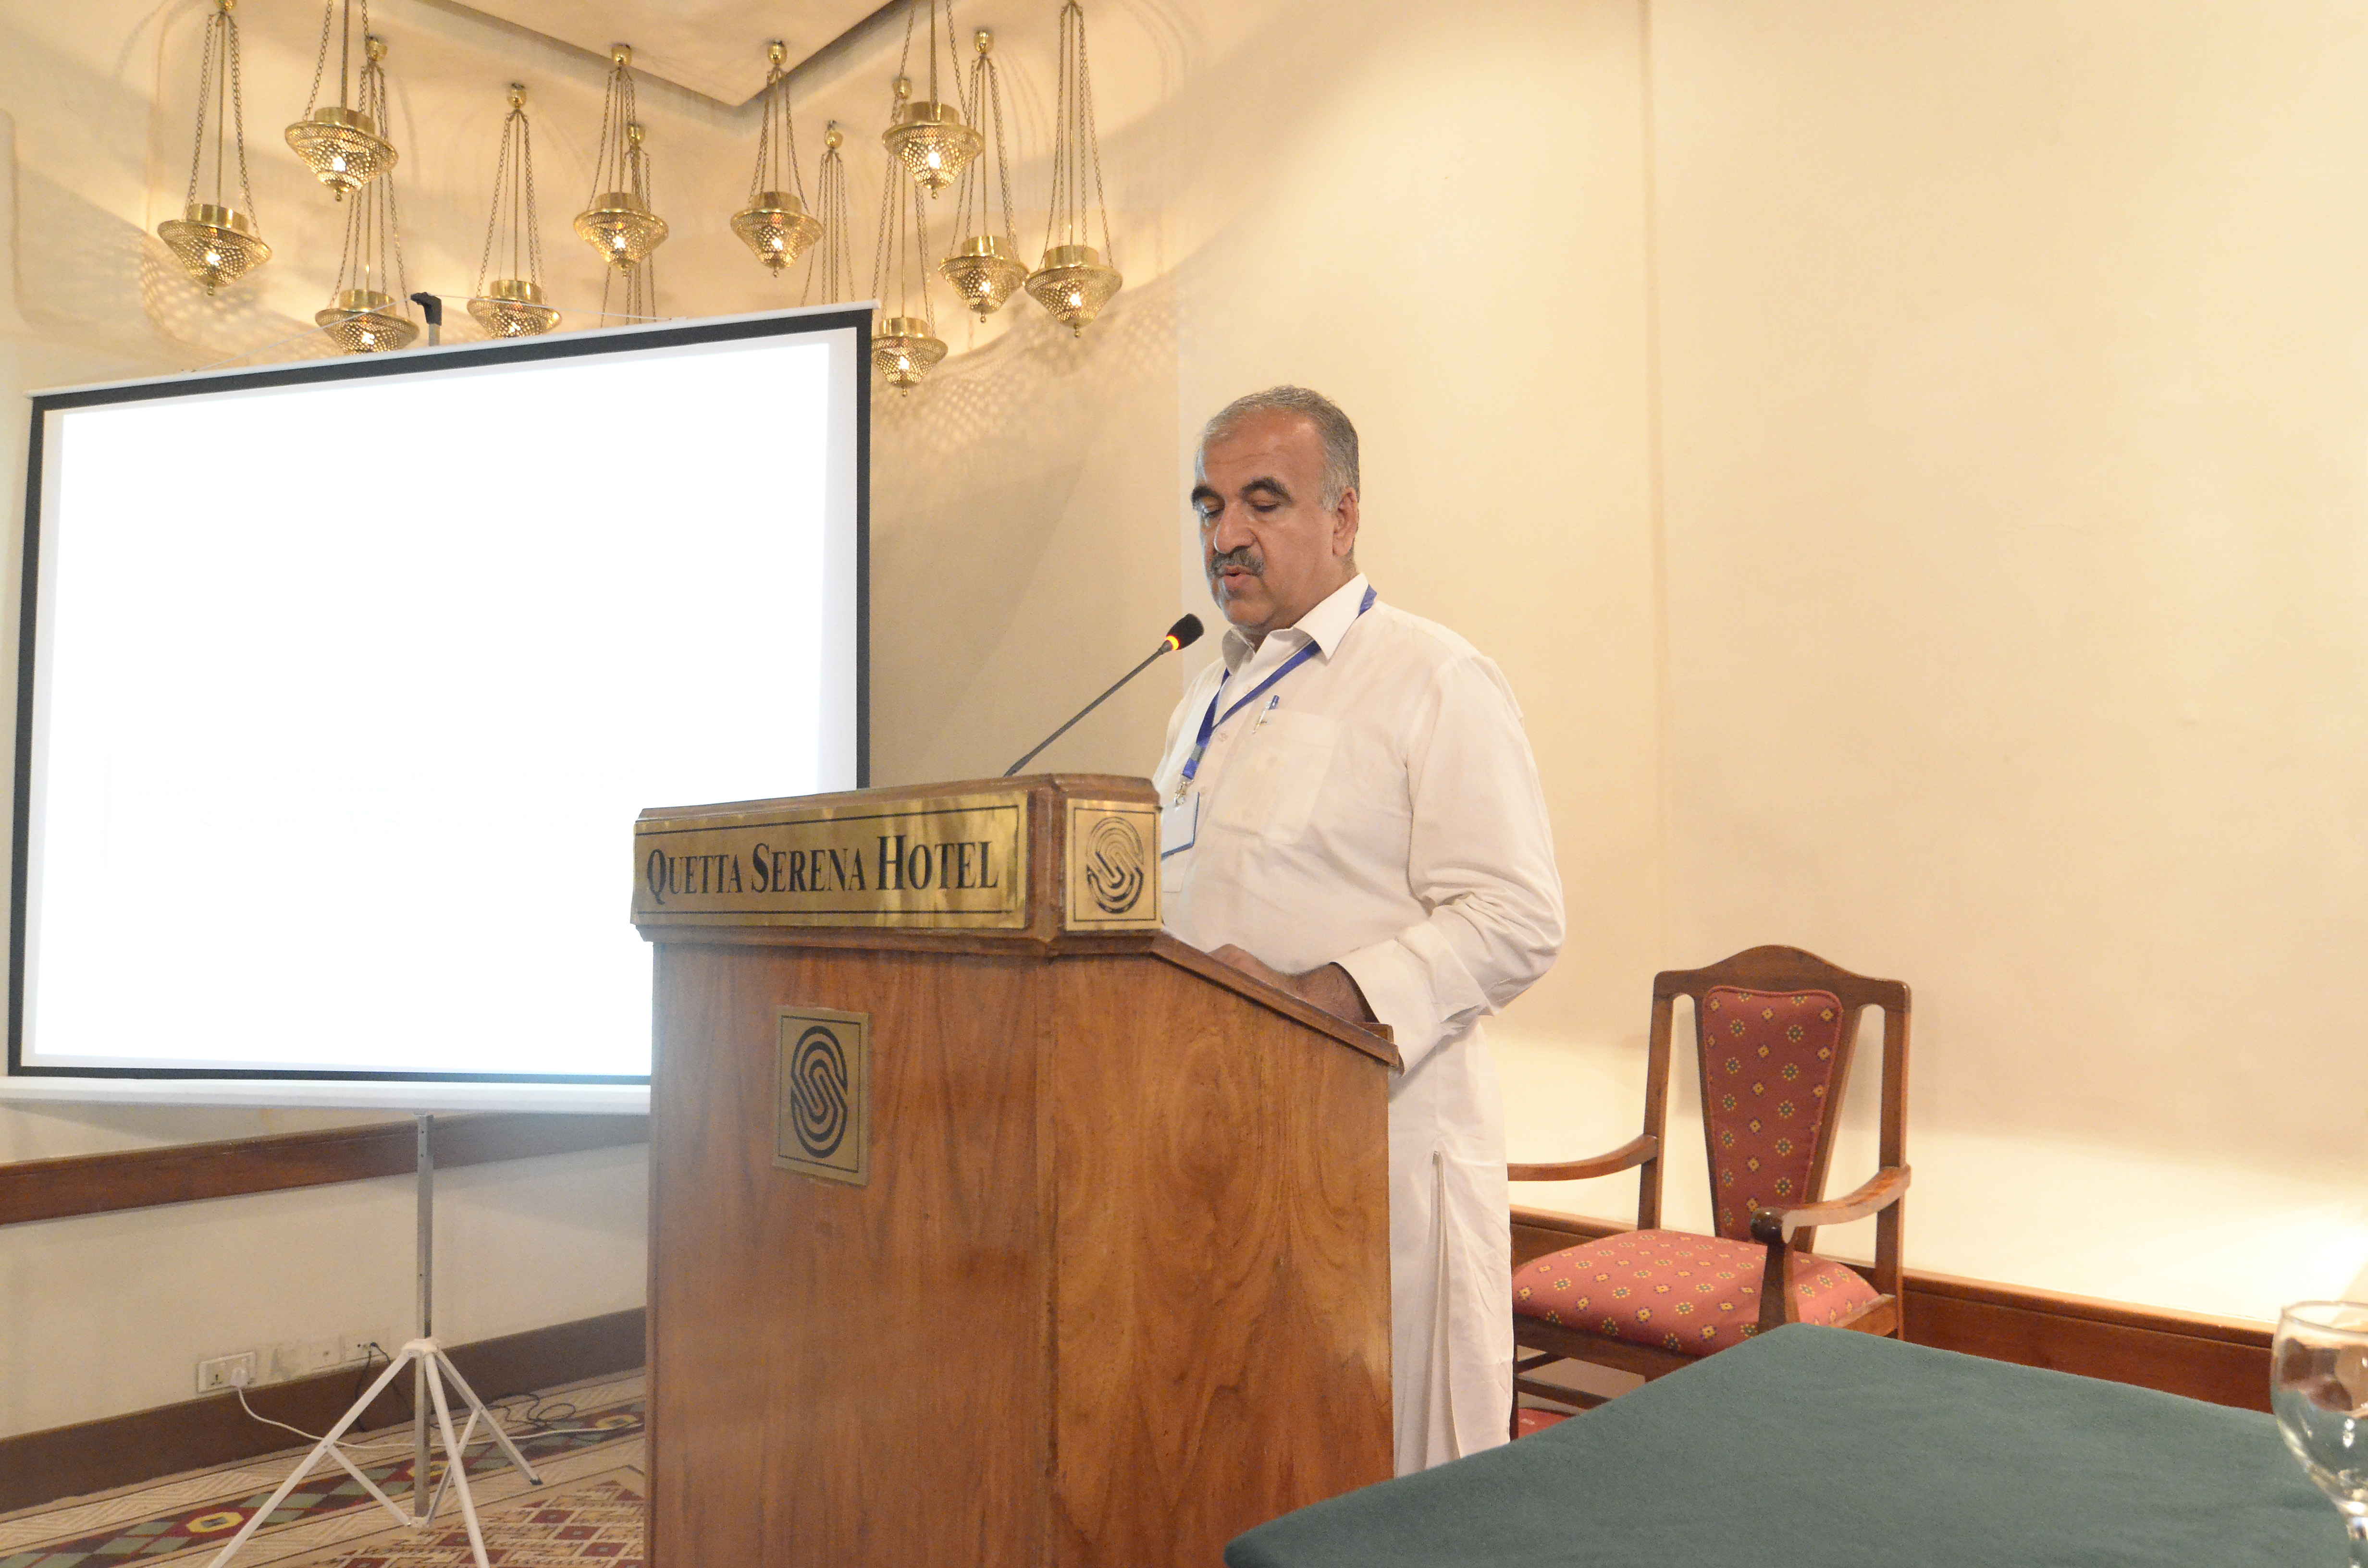 EMIS Policy Presented by Niamat Ullah Kakar Additional Director Secondary School & Focal Person EMIS